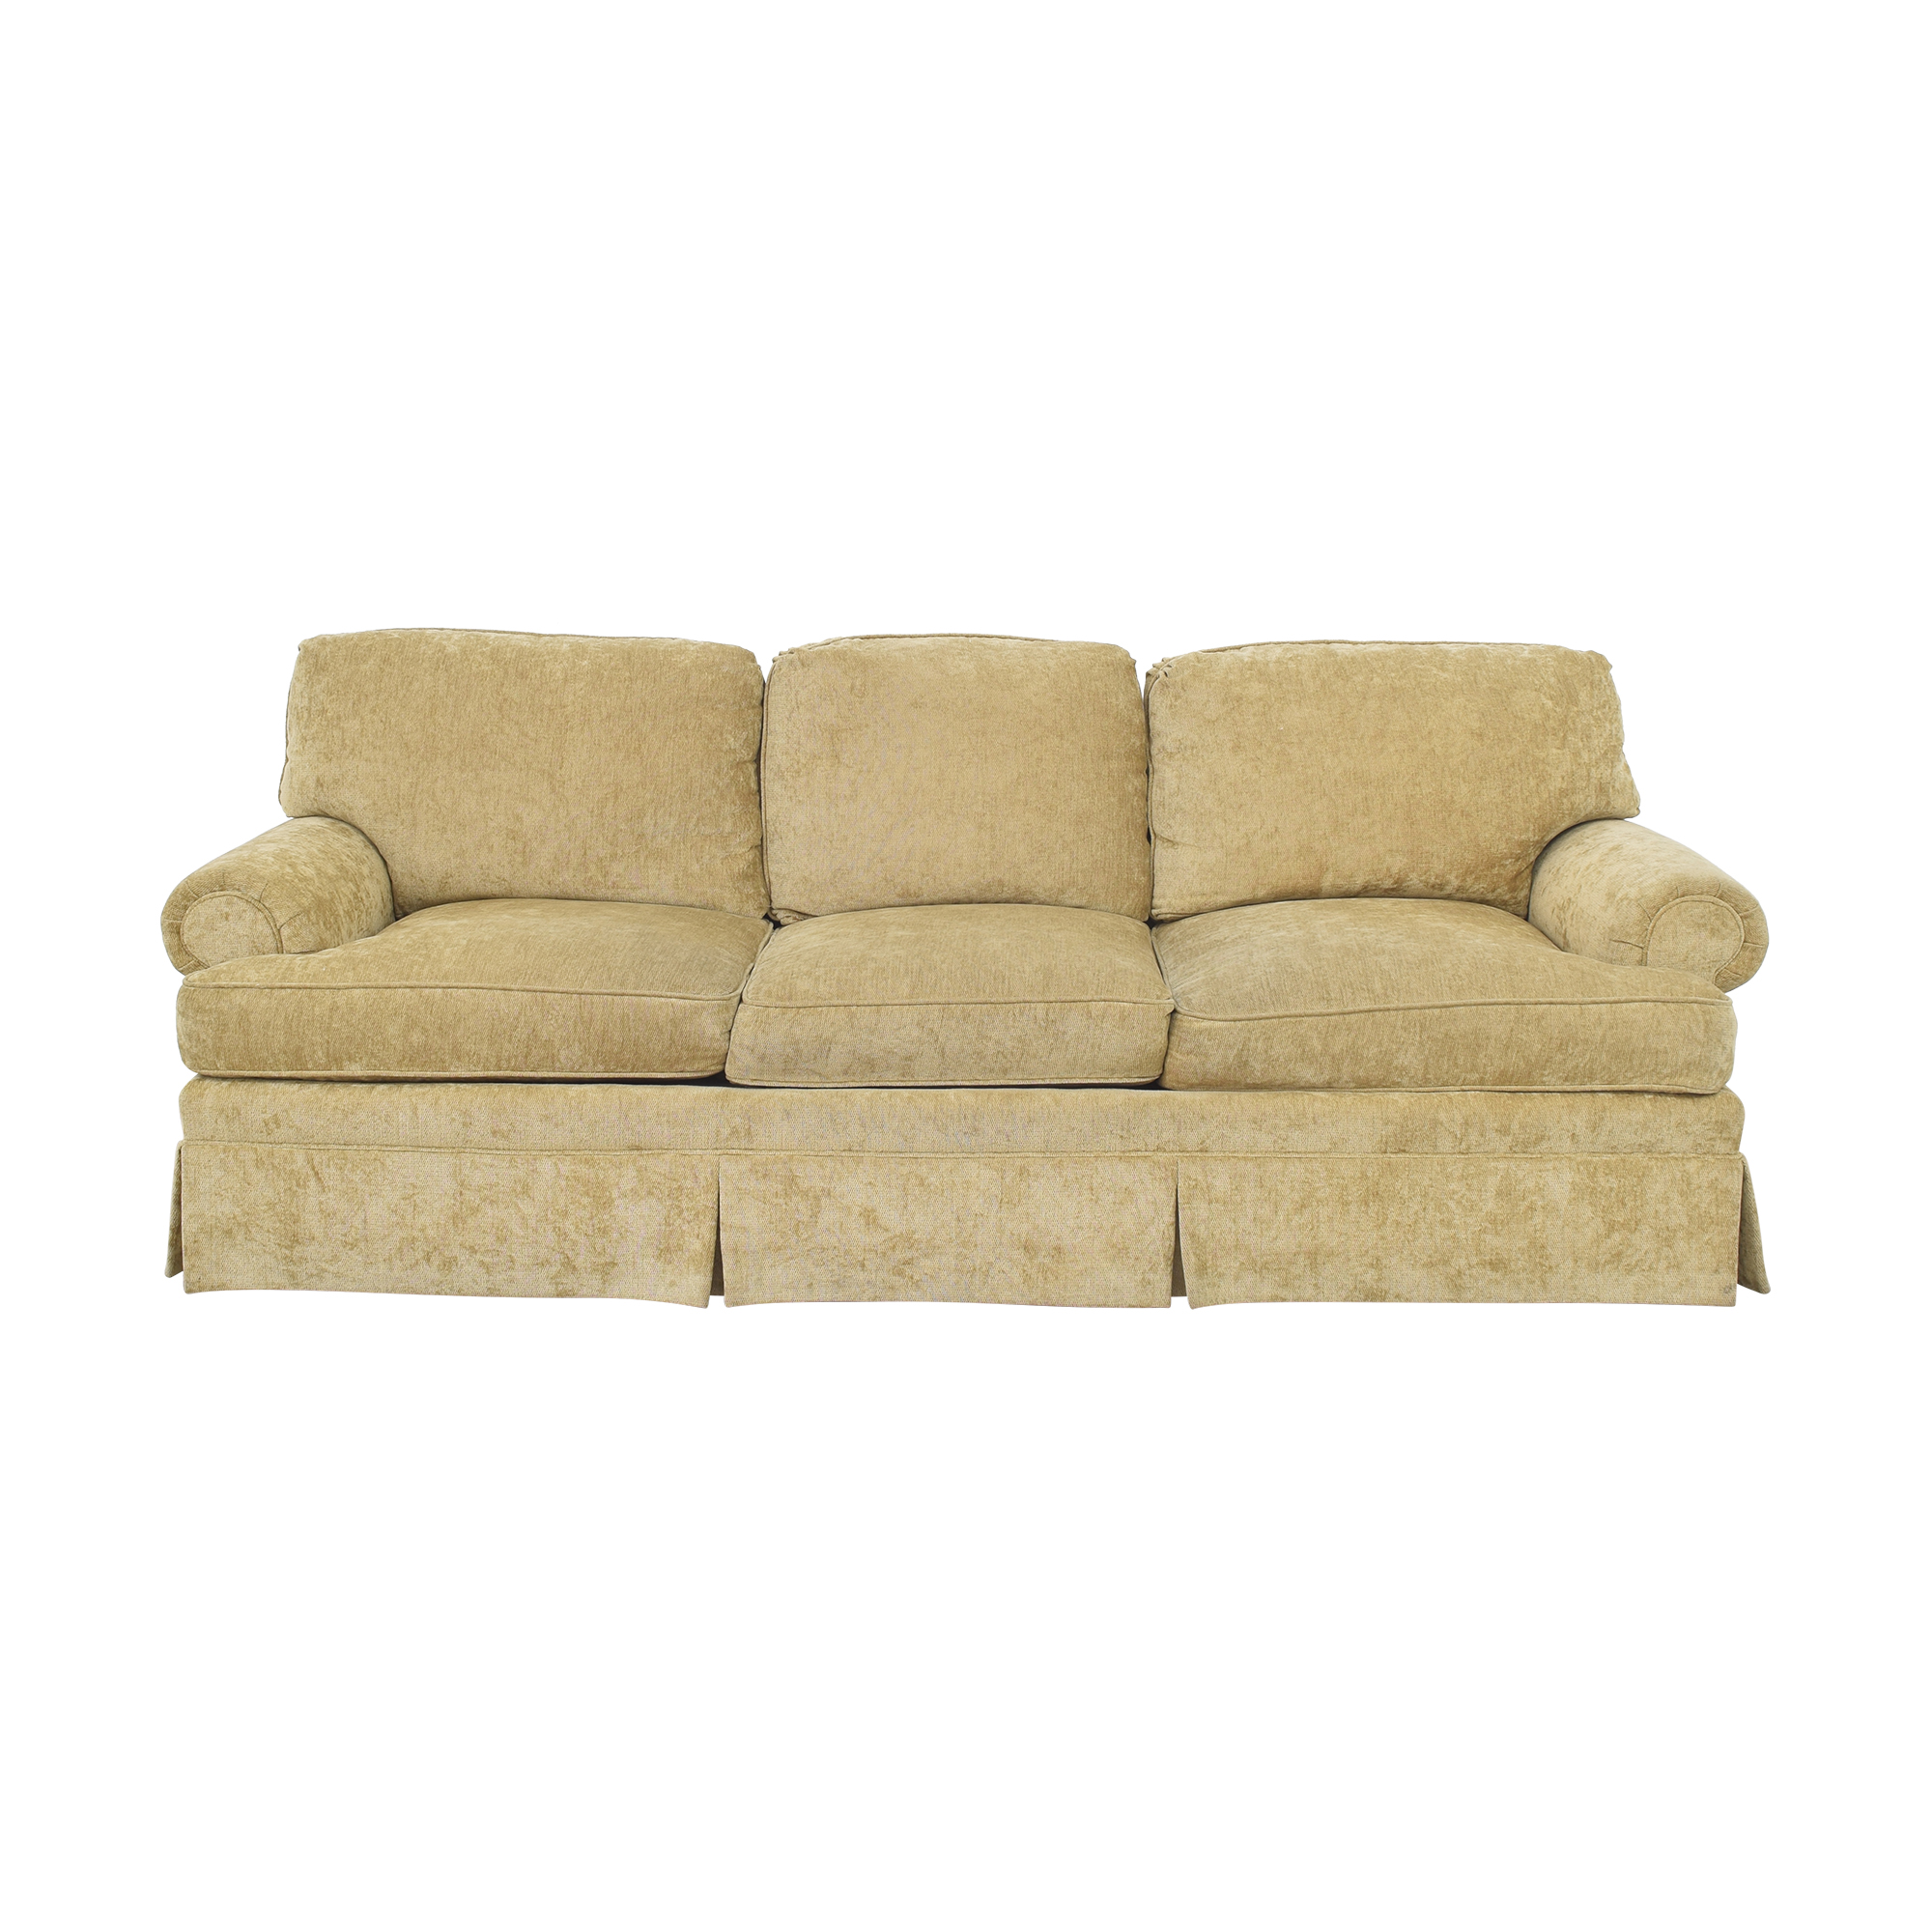 Century Furniture Century Furniture Roll Arm Skirted Sofa used